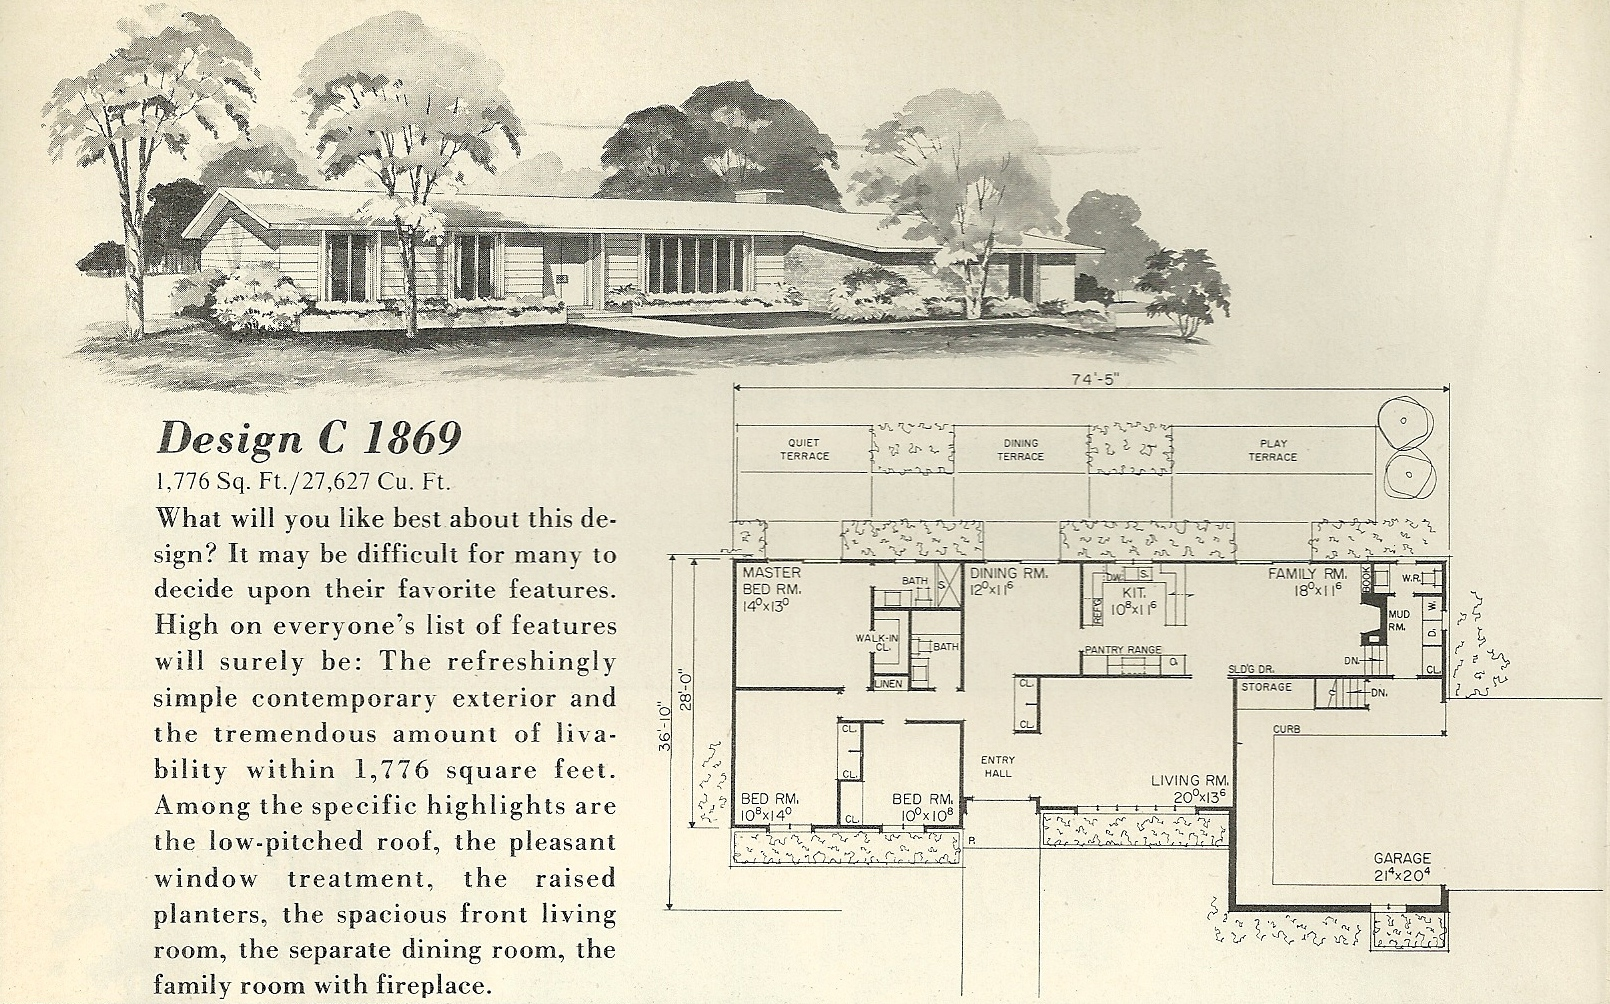 Vintage house plans 1869 antique alter ego 1960s ranch style house plans